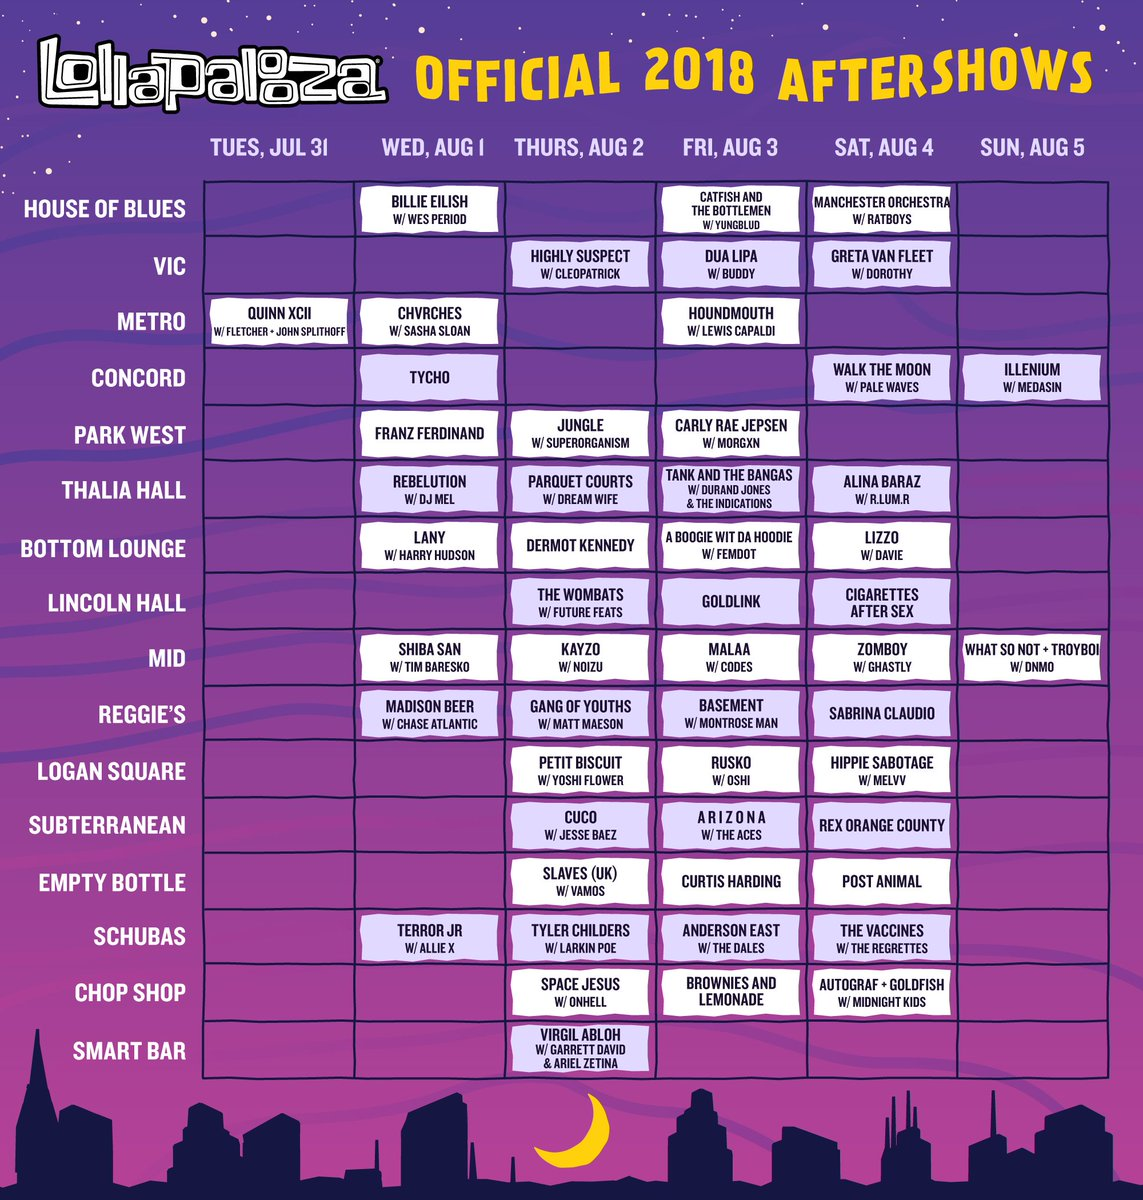 Lollapalooza on Twitter: